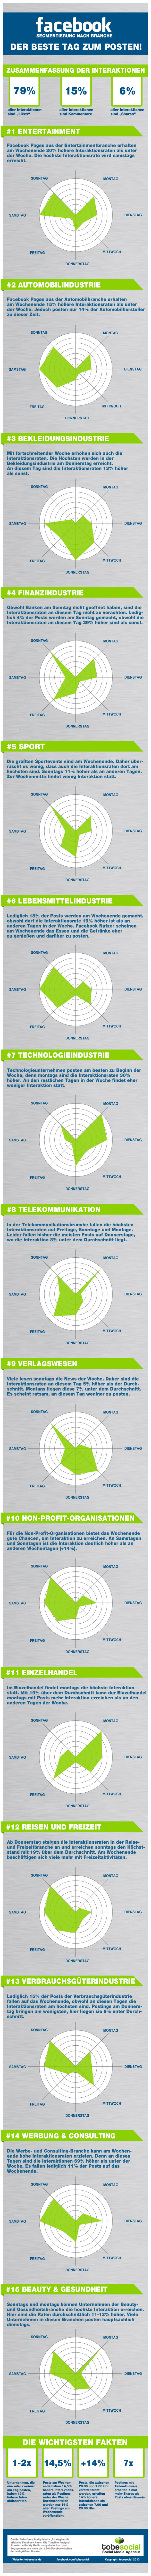 Infografik Strategien für Facebook-Postings nach Branche (Social Media Agentur tobesocial)